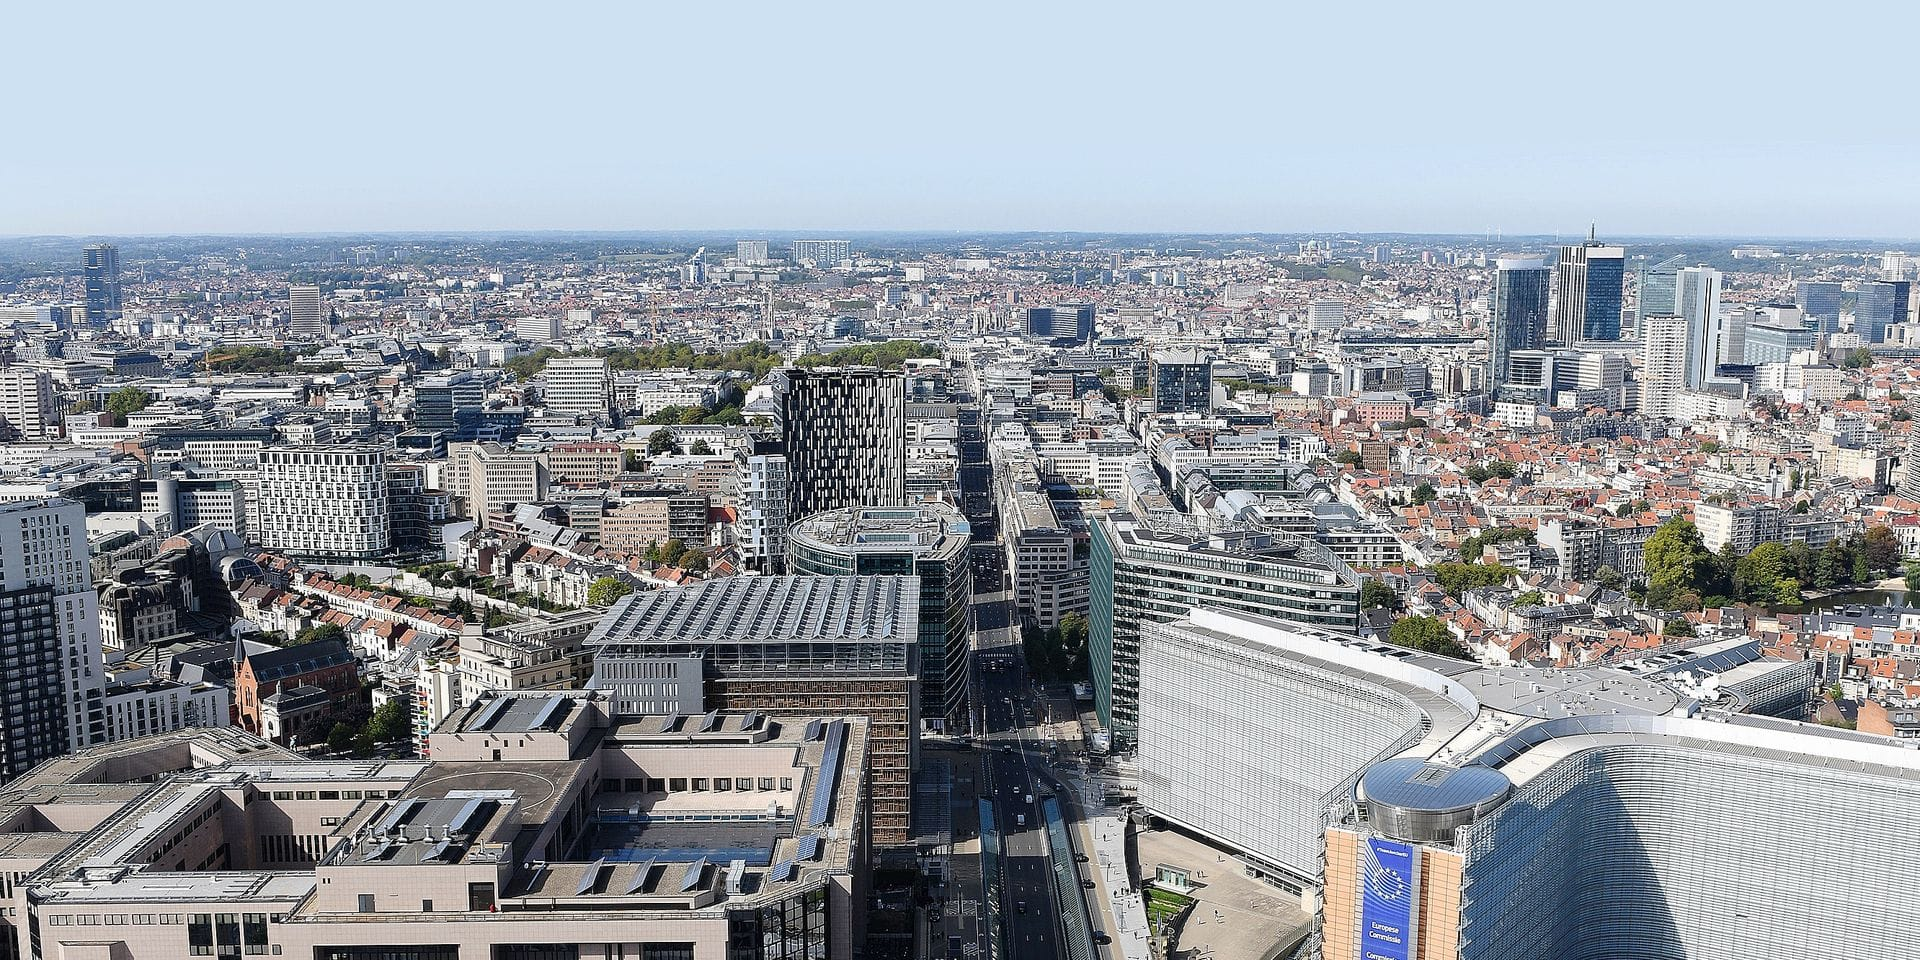 Aerial Views of Brussels